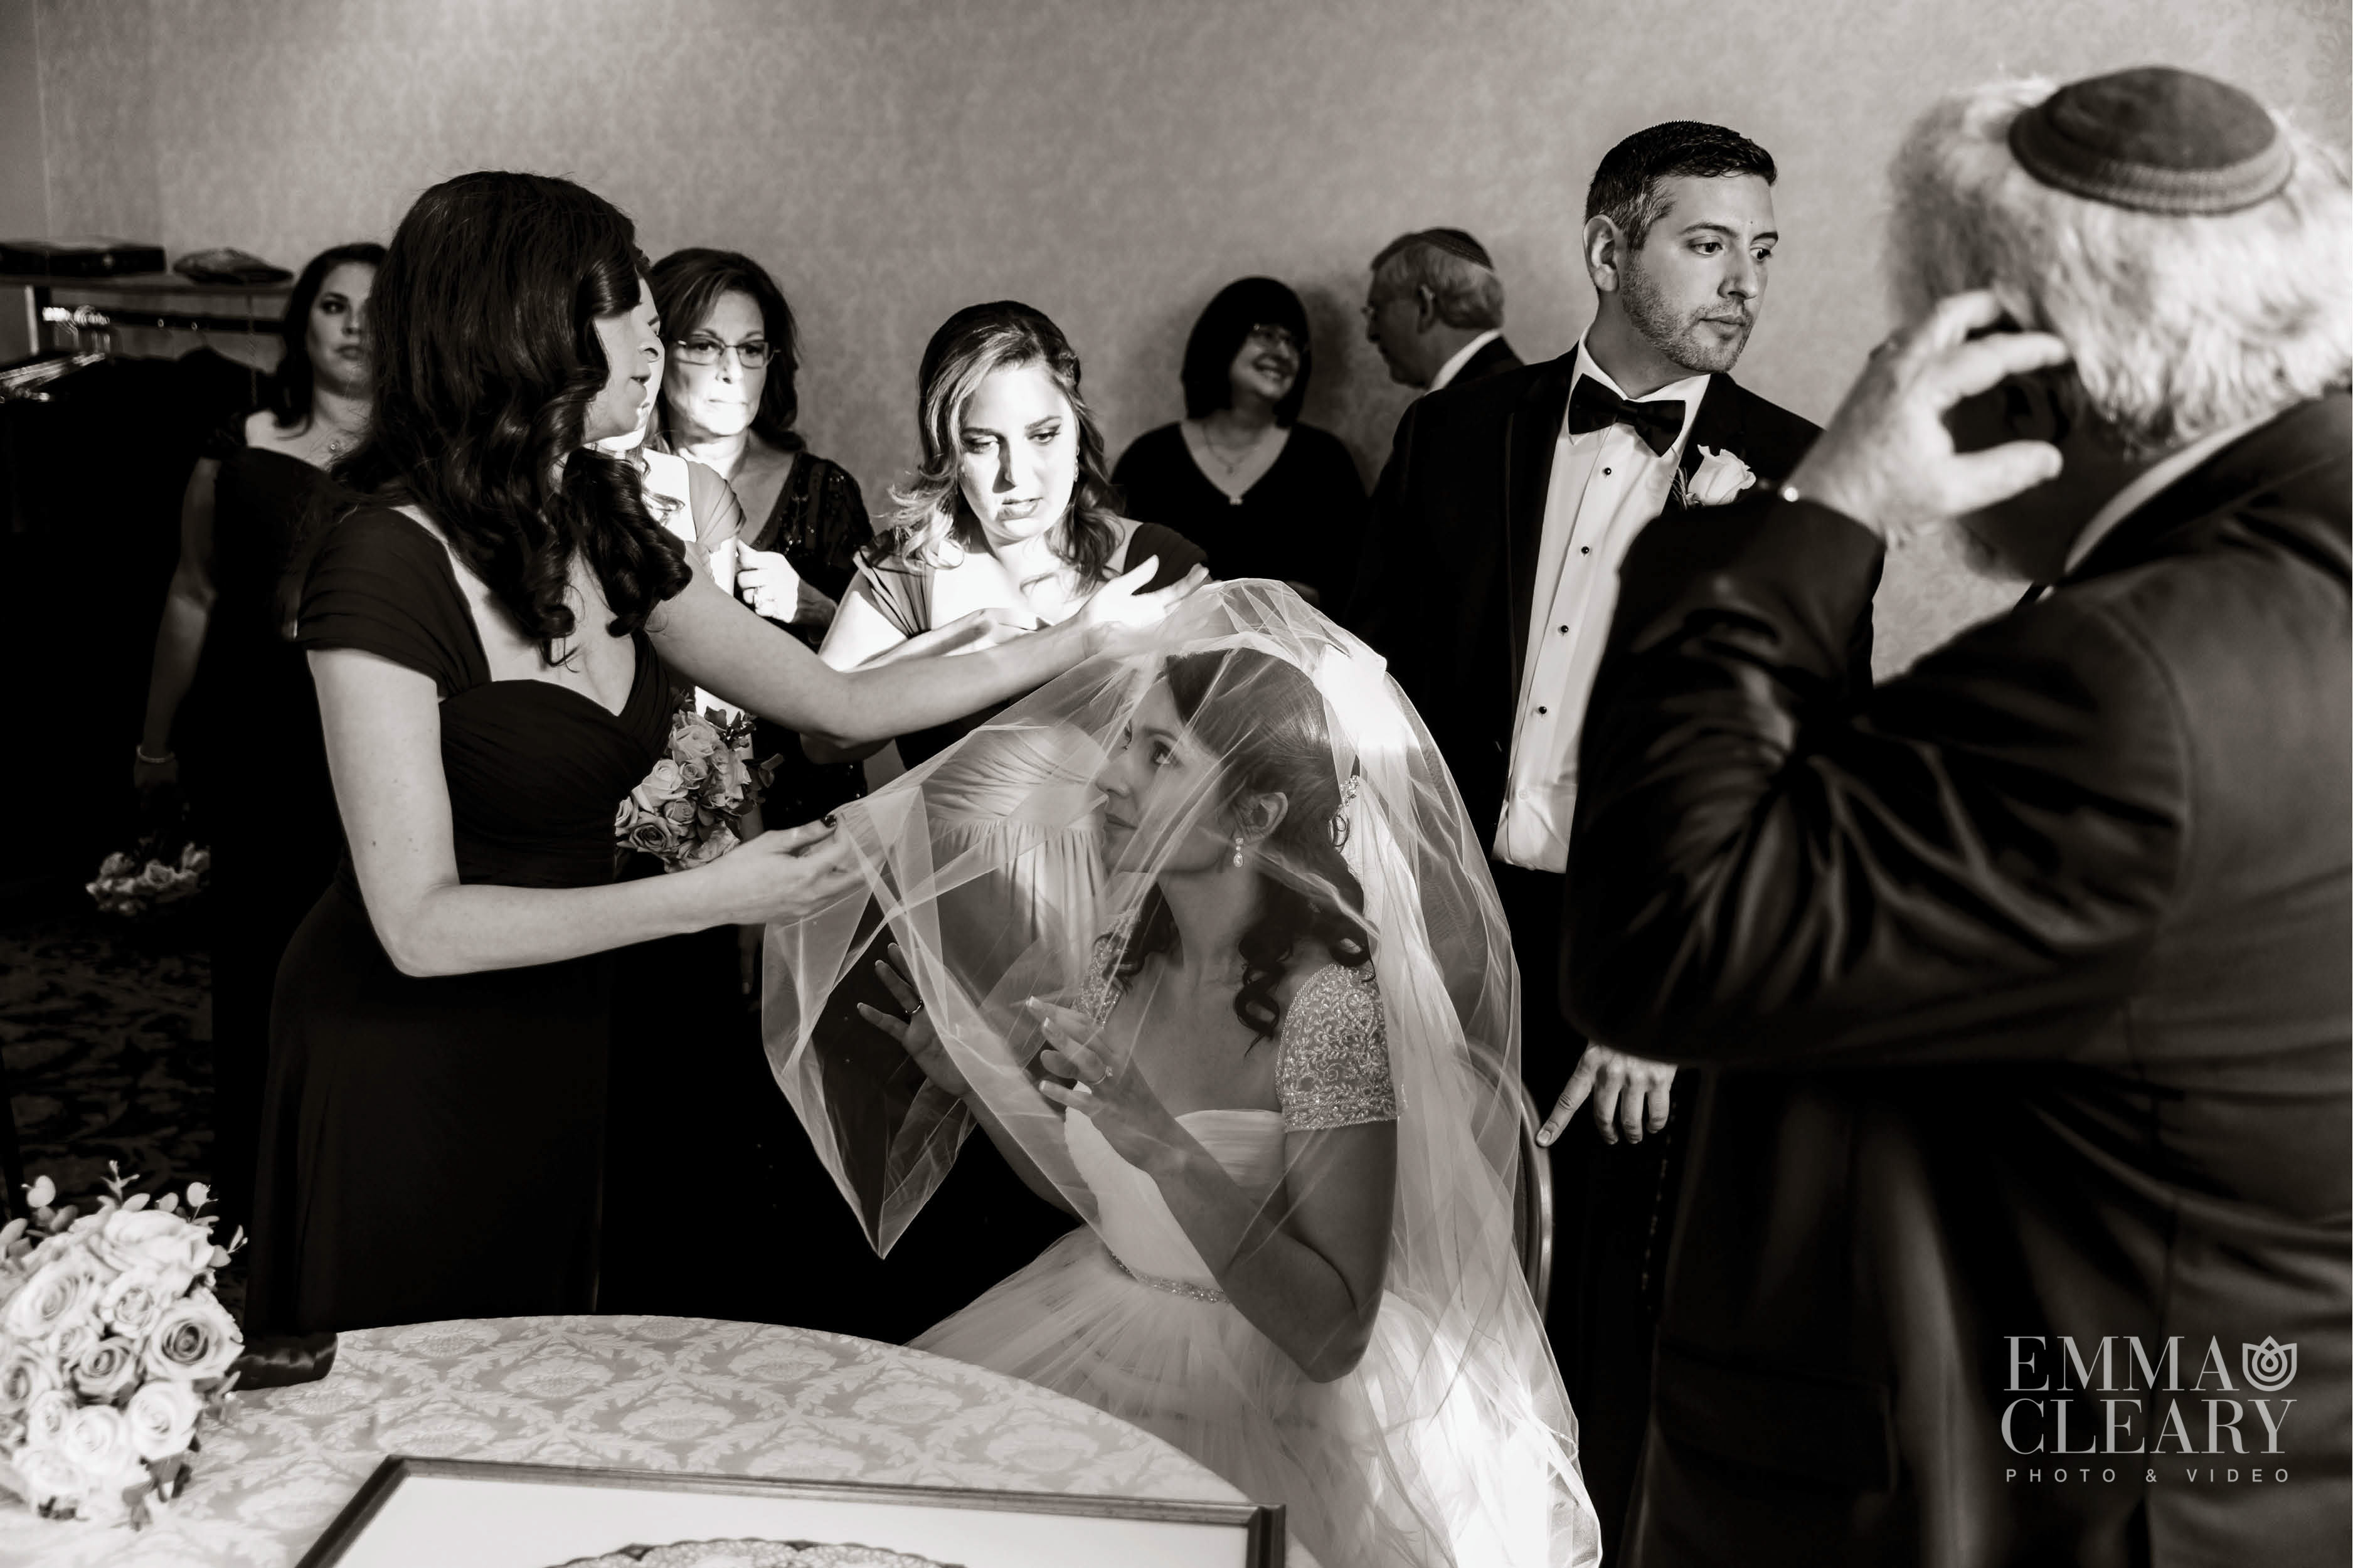 Emma_cleary_photography Hilton pearl river NY wedding20